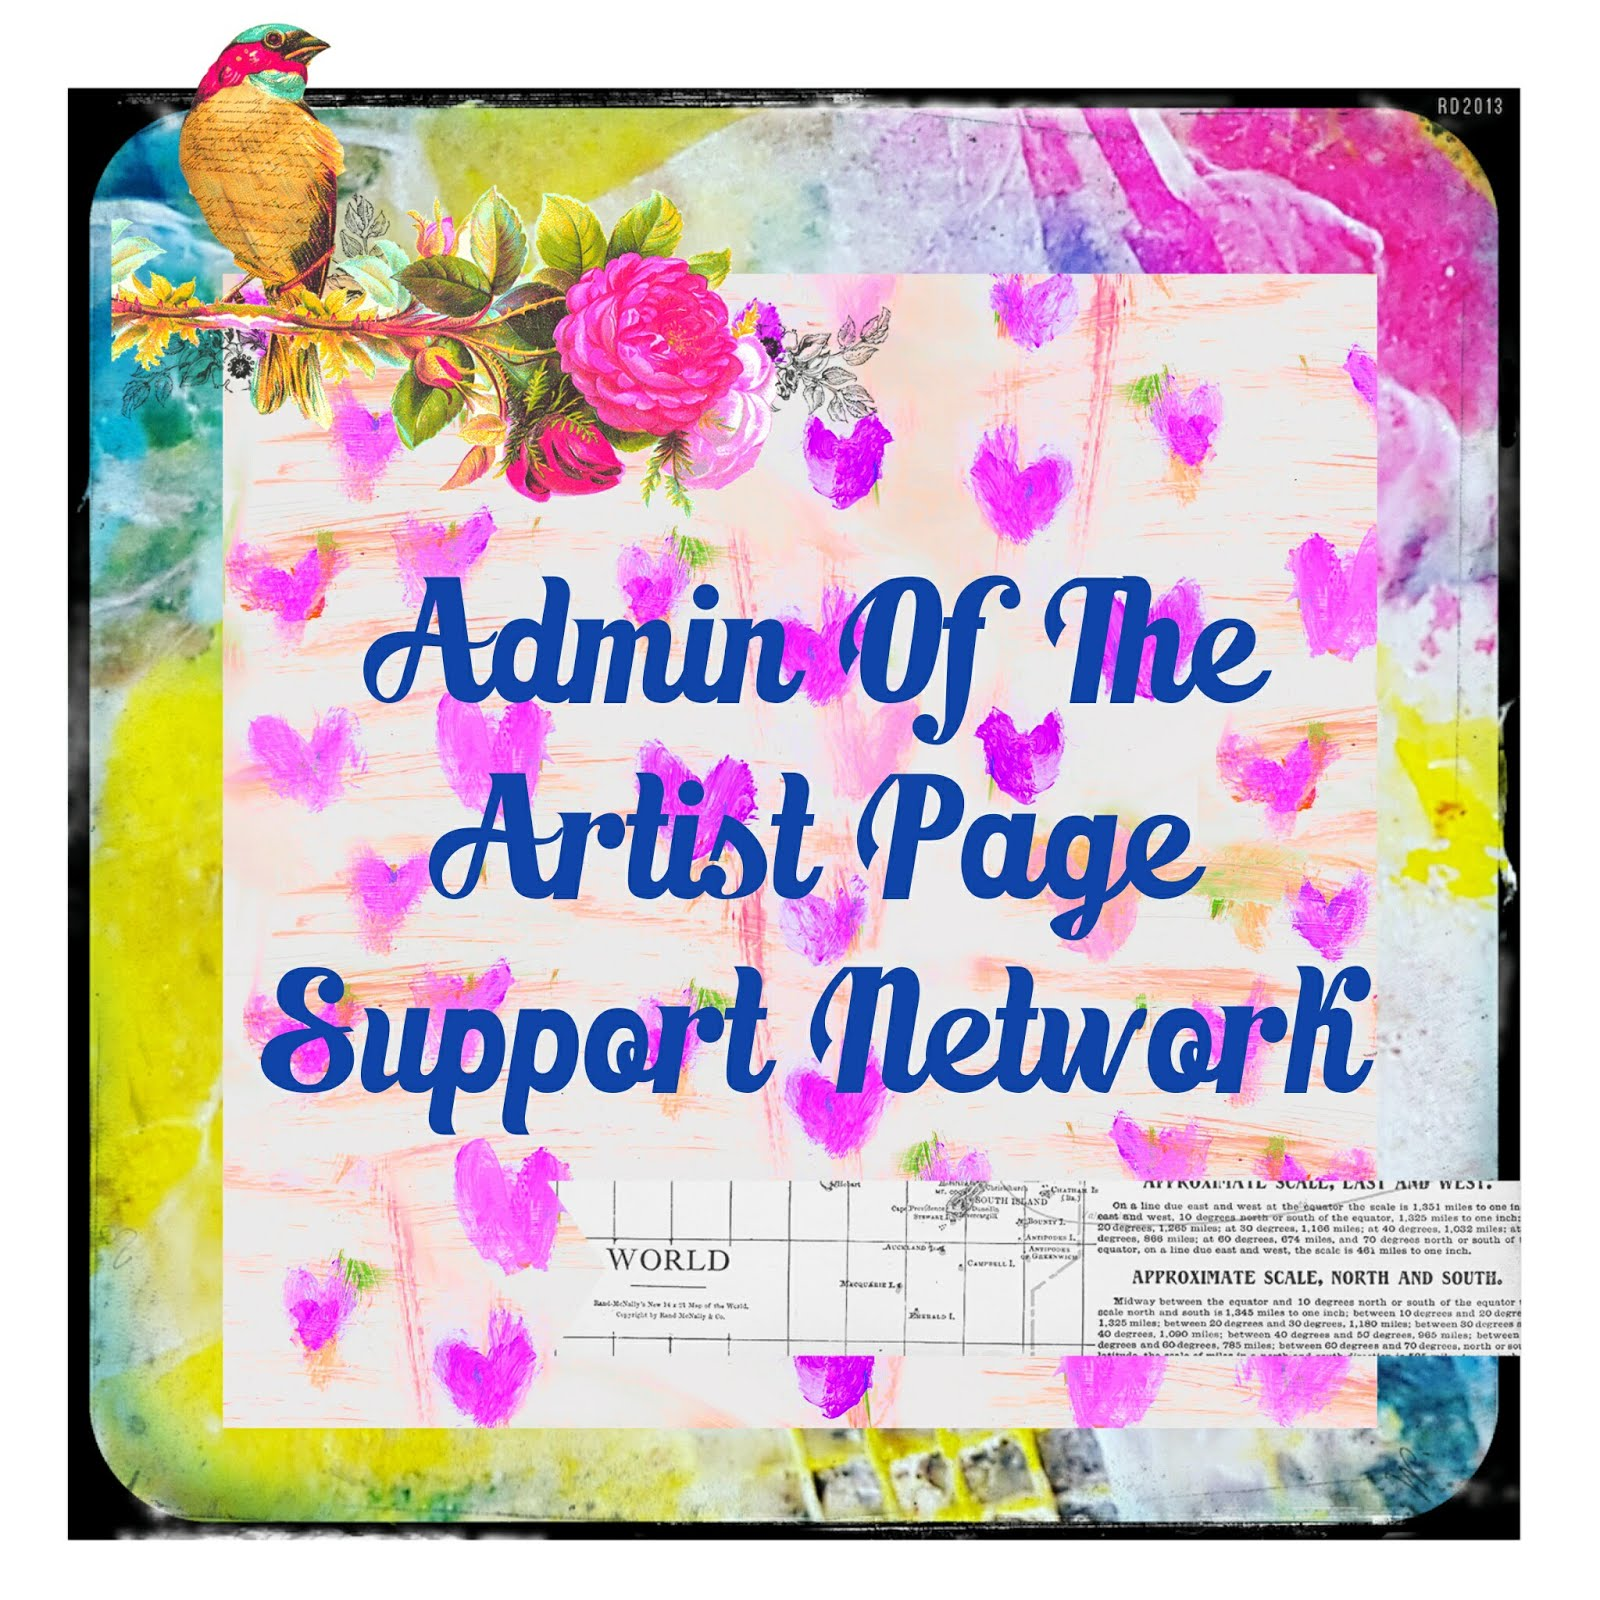 Admin Artist Page Support Network